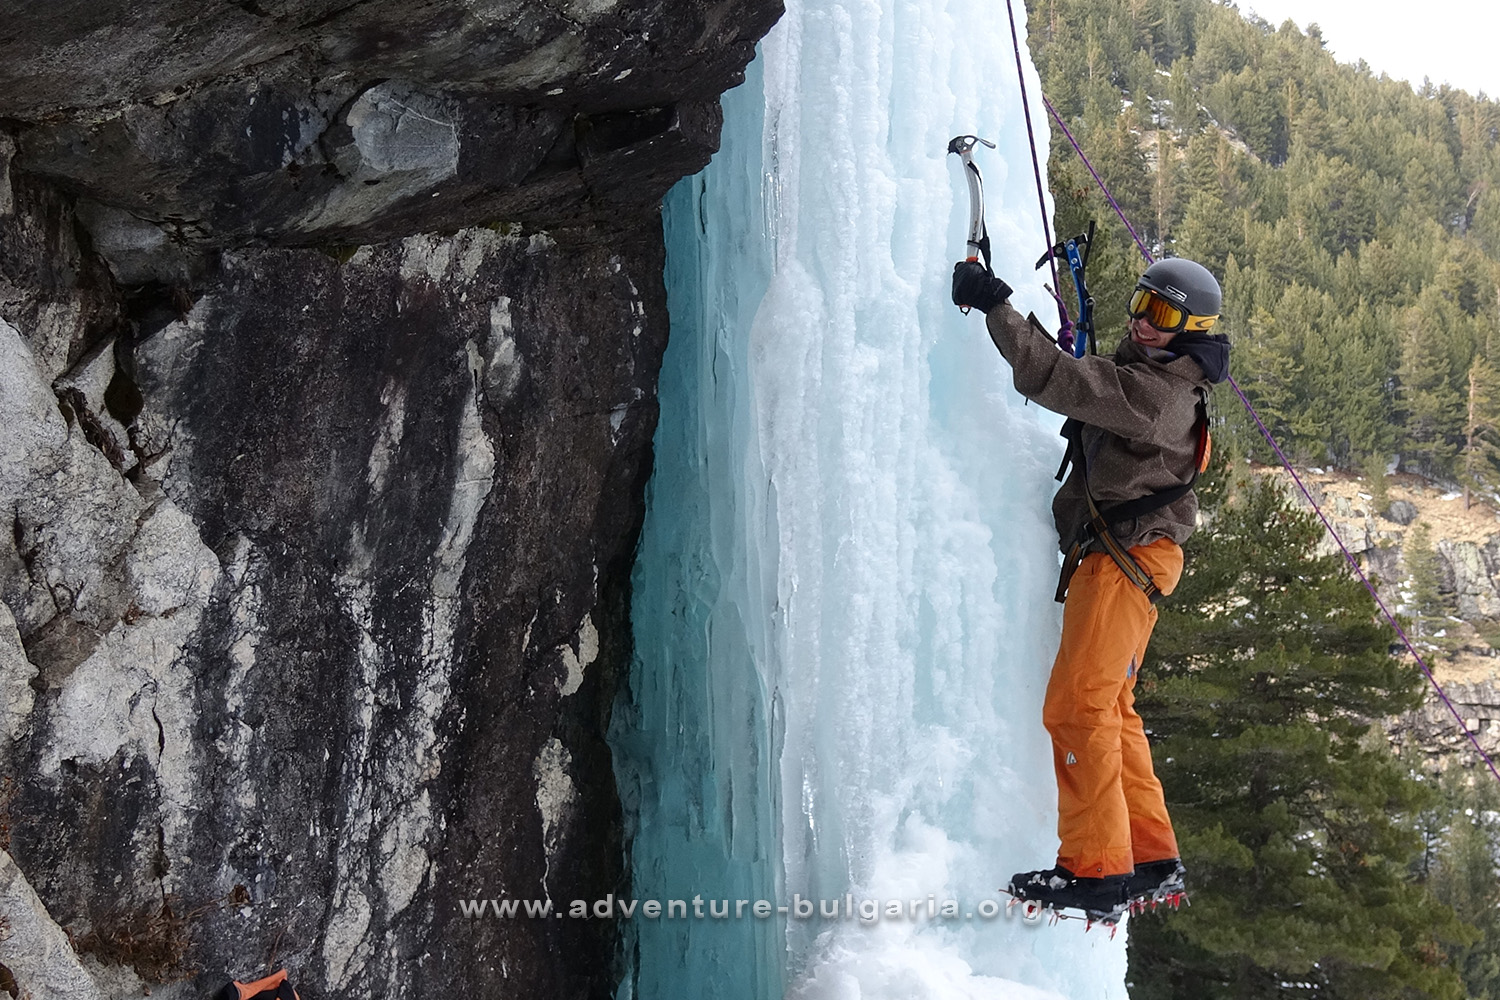 Ice climbing at the waterfall Little Skakavitsa, Rila mountain, Bulgaria